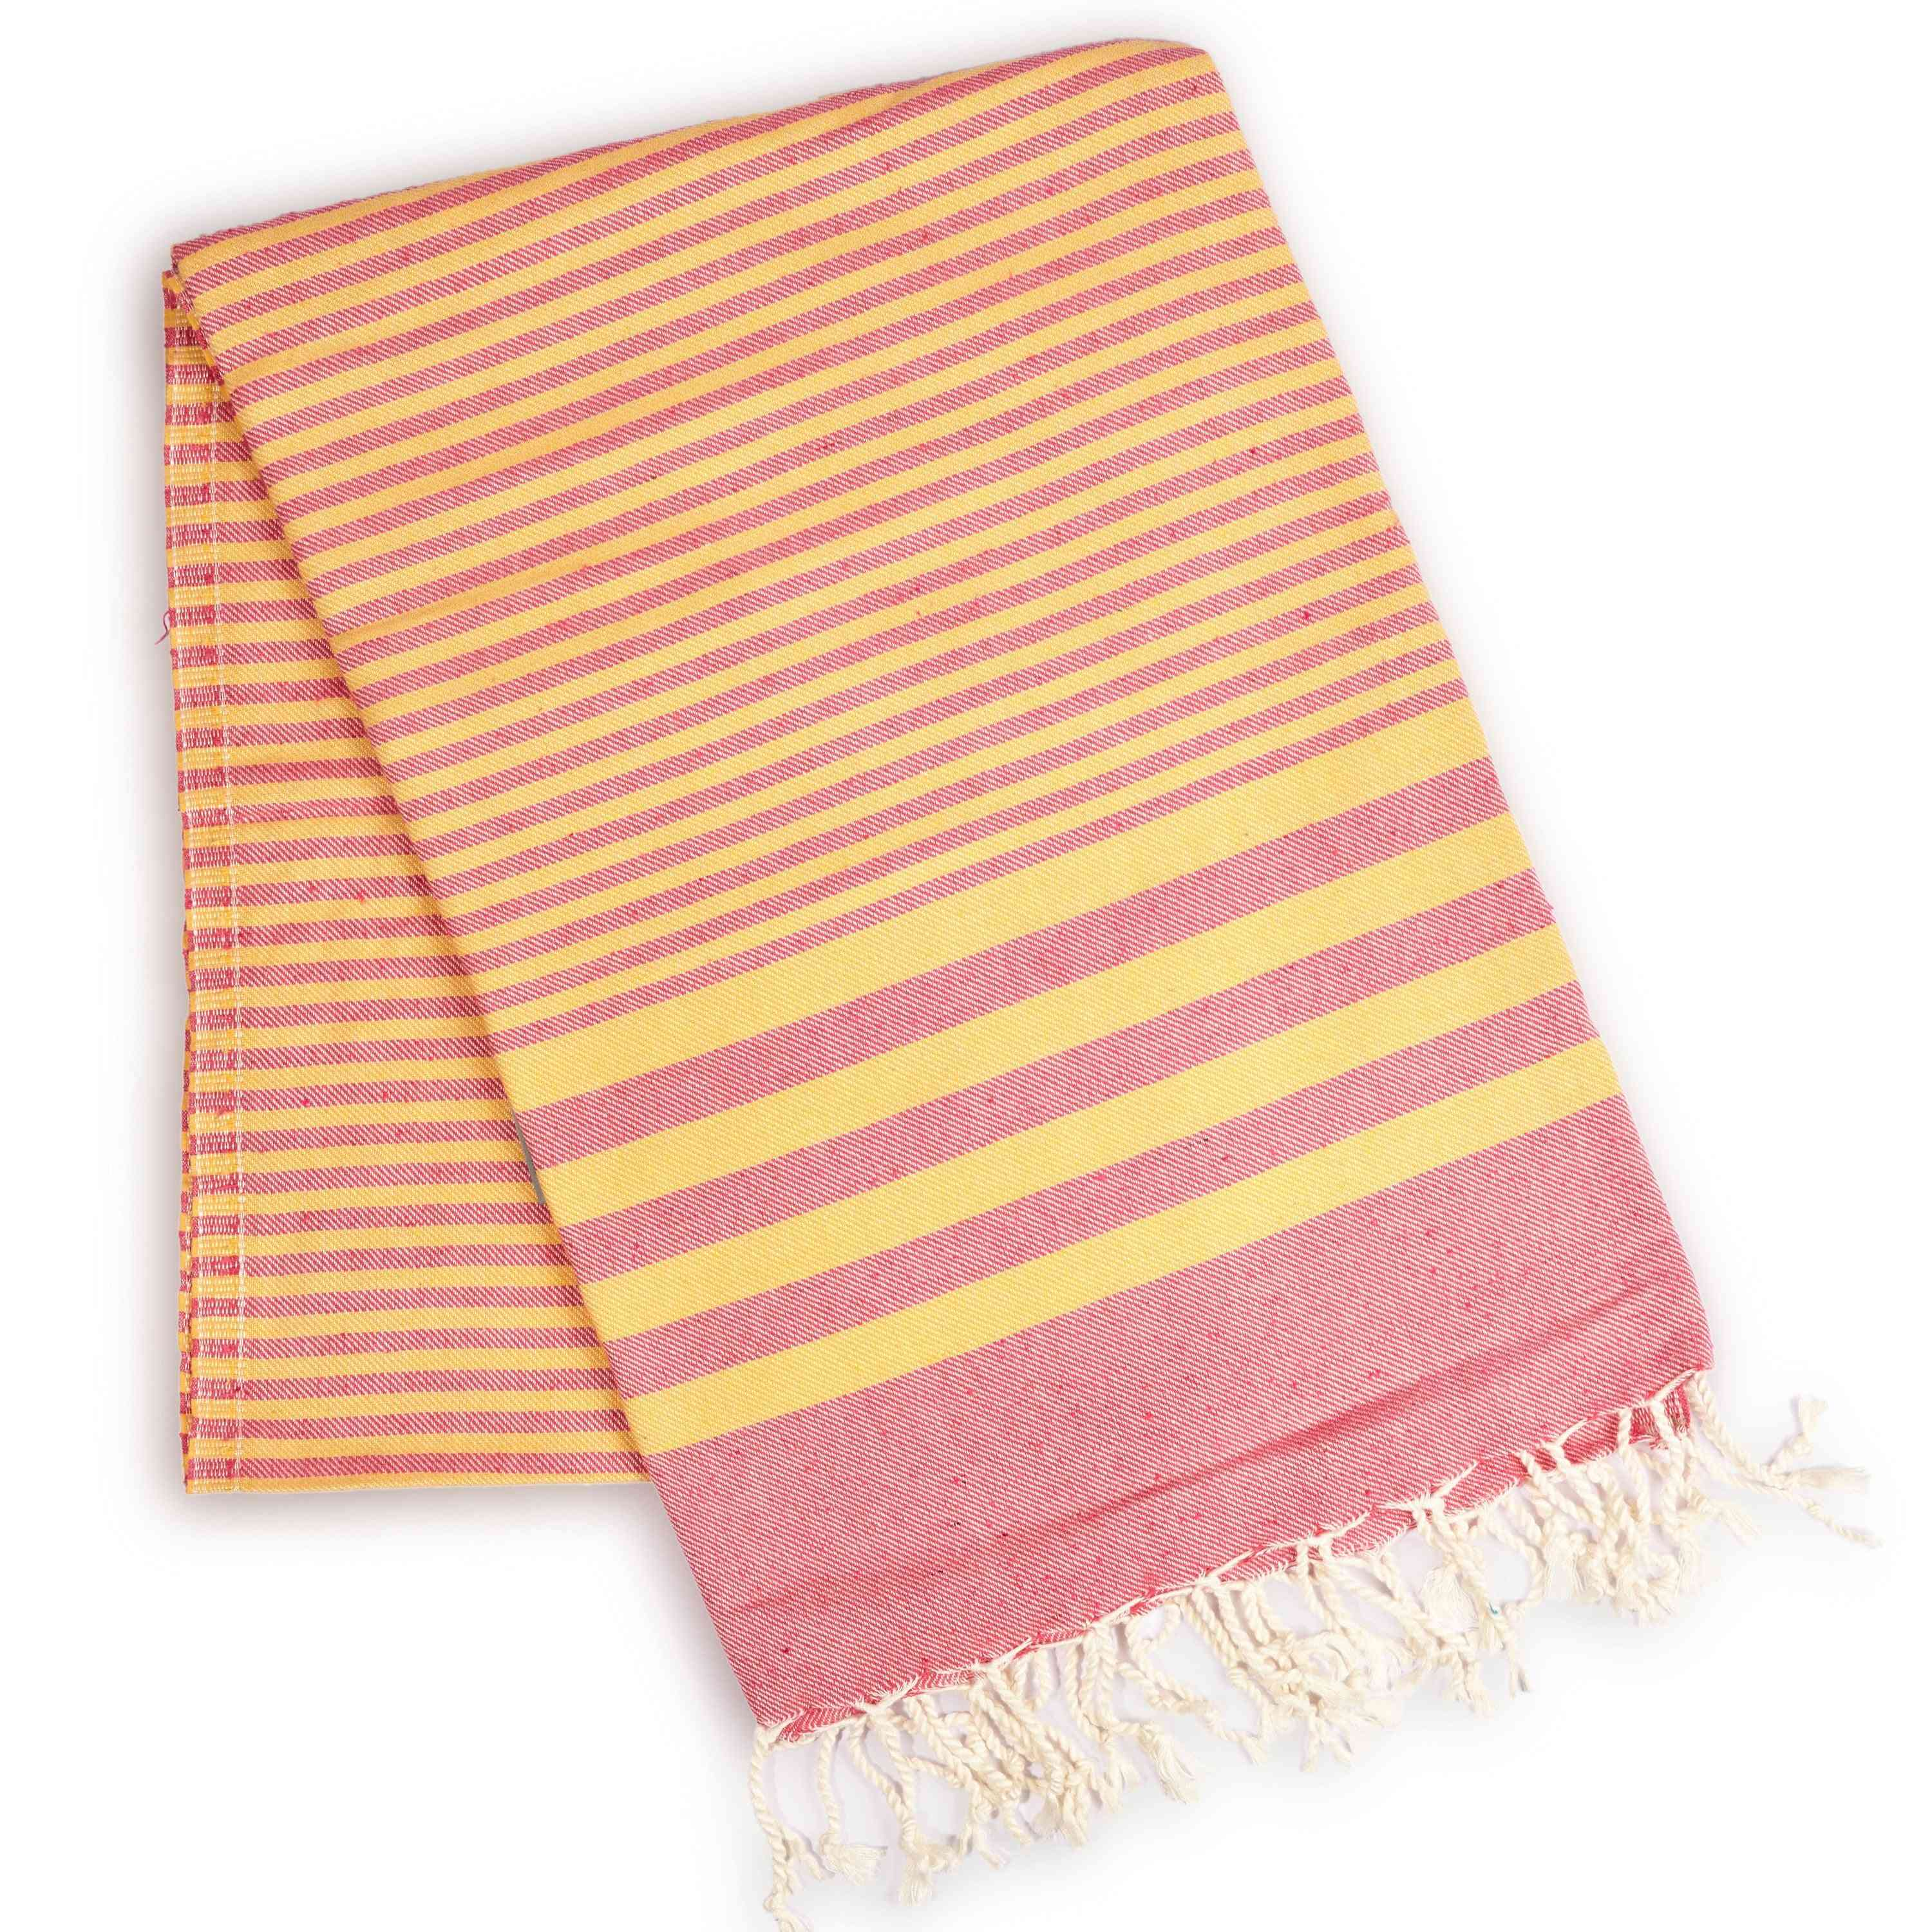 Attractive Striped- Fold Down Towel